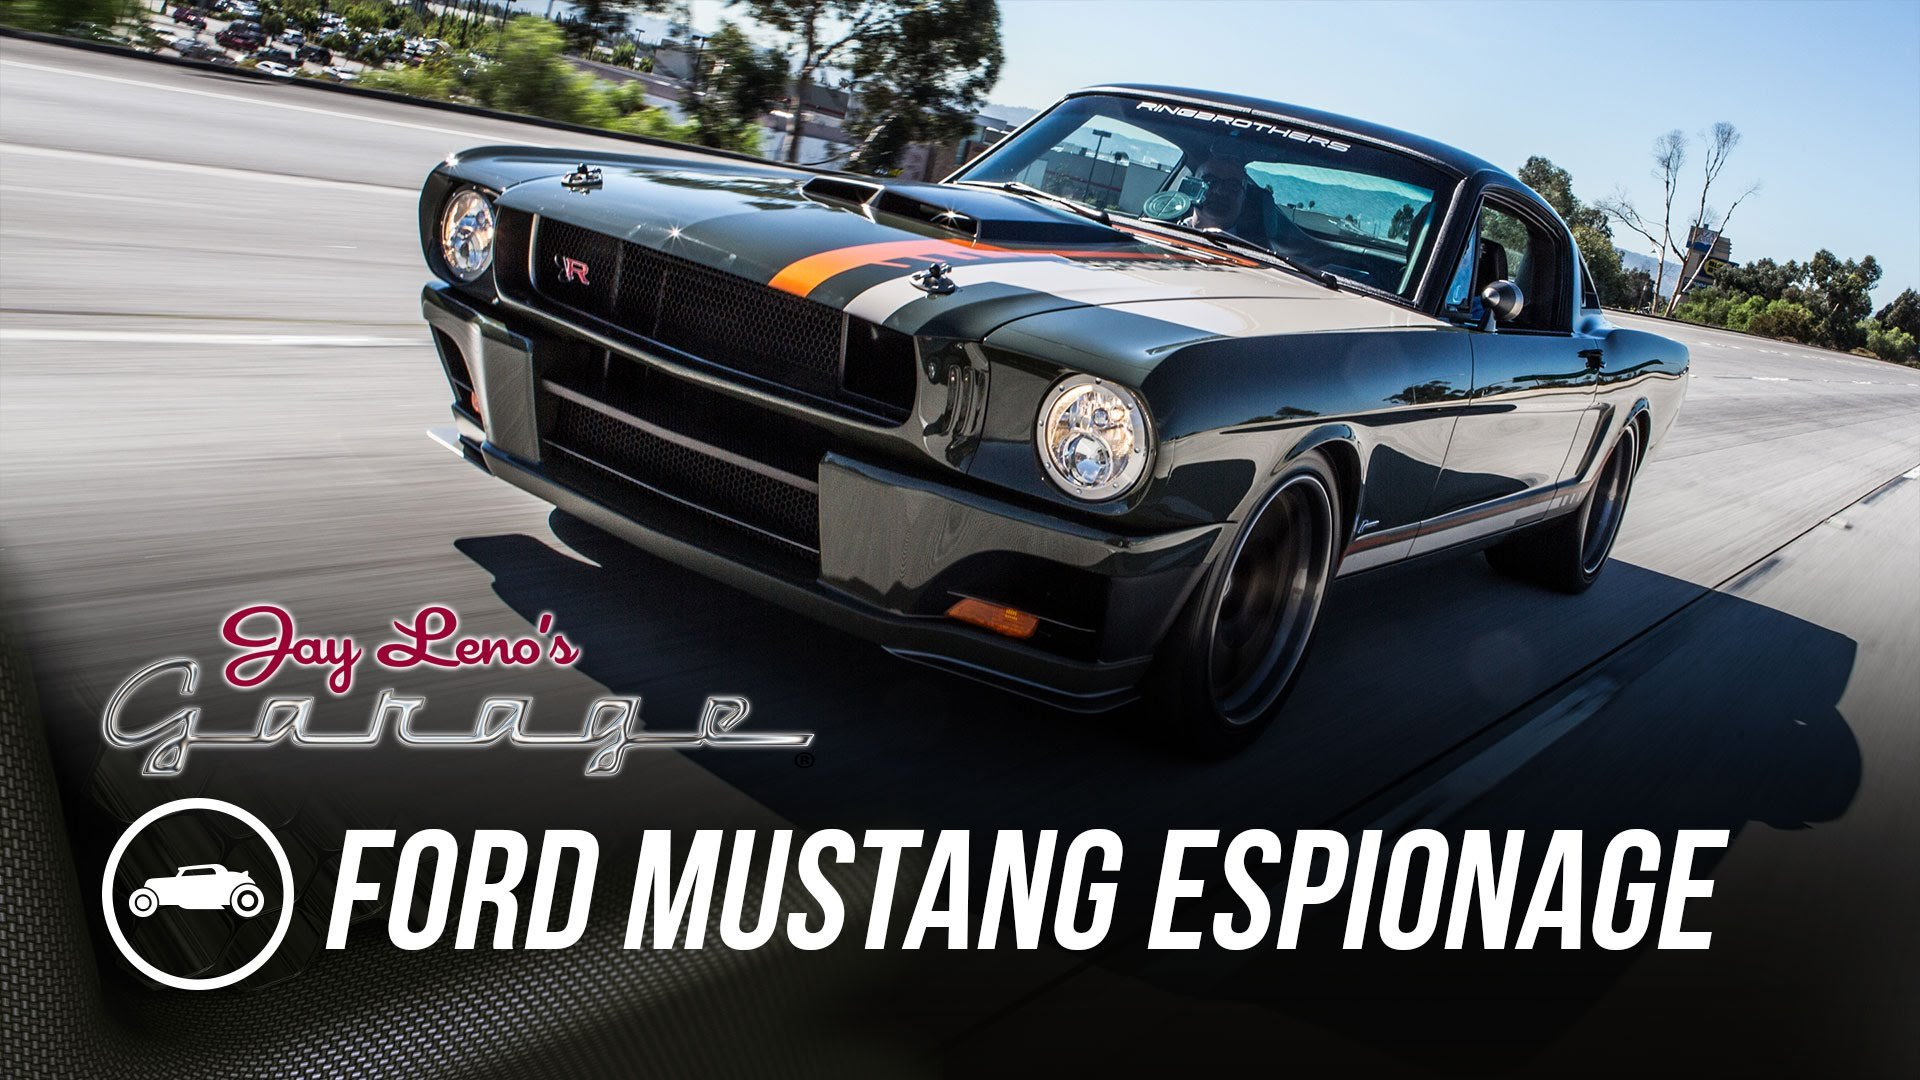 Custom Carbon-Fiber \'65 Ford Mustang Espionage Is MOST AWESOME ...